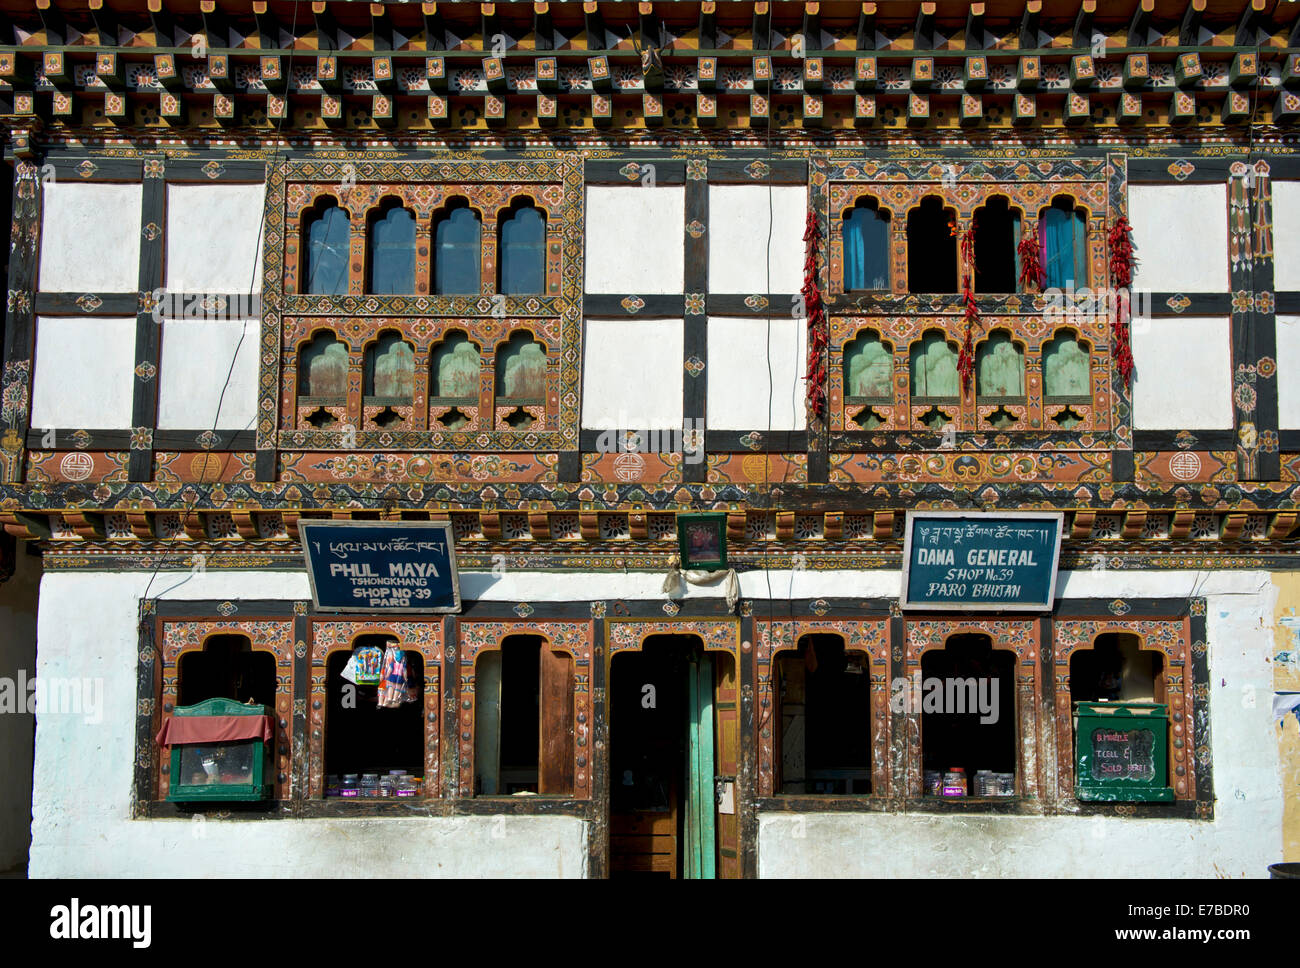 Shop in a typical Bhutanese building, Paro, Bhutan - Stock Image